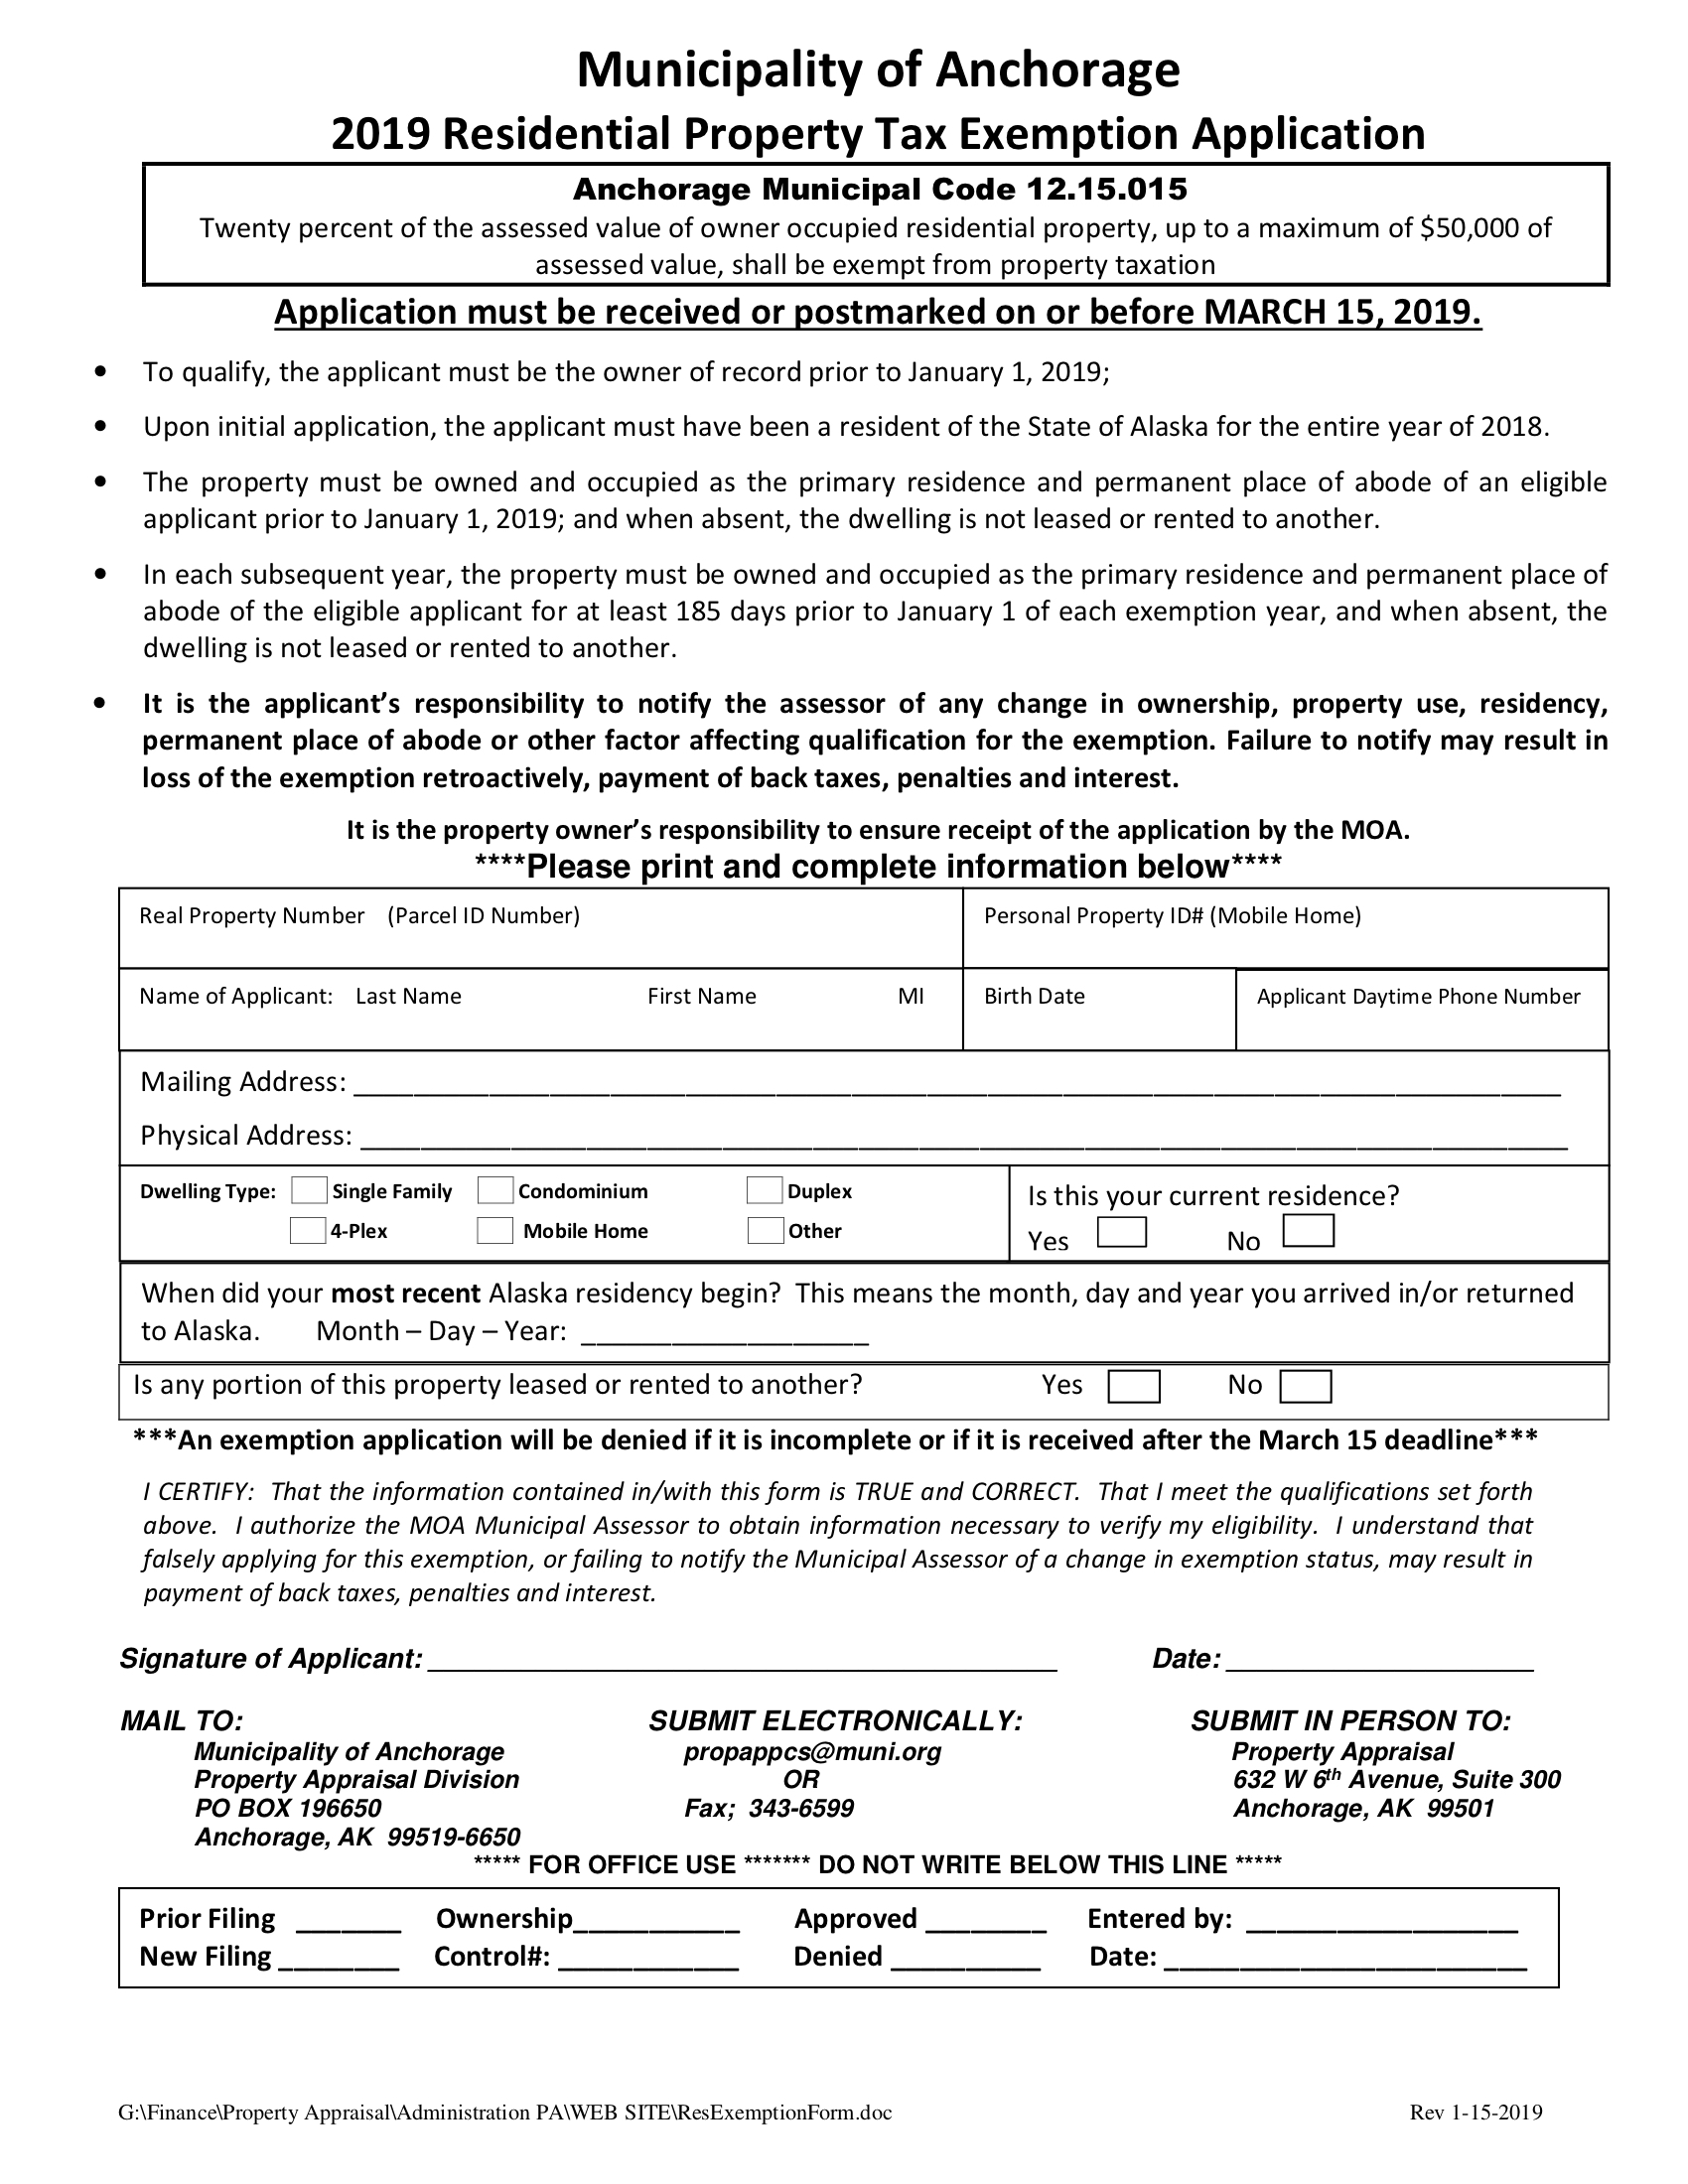 Anchorage 2019 Residential Tax Exemption Form